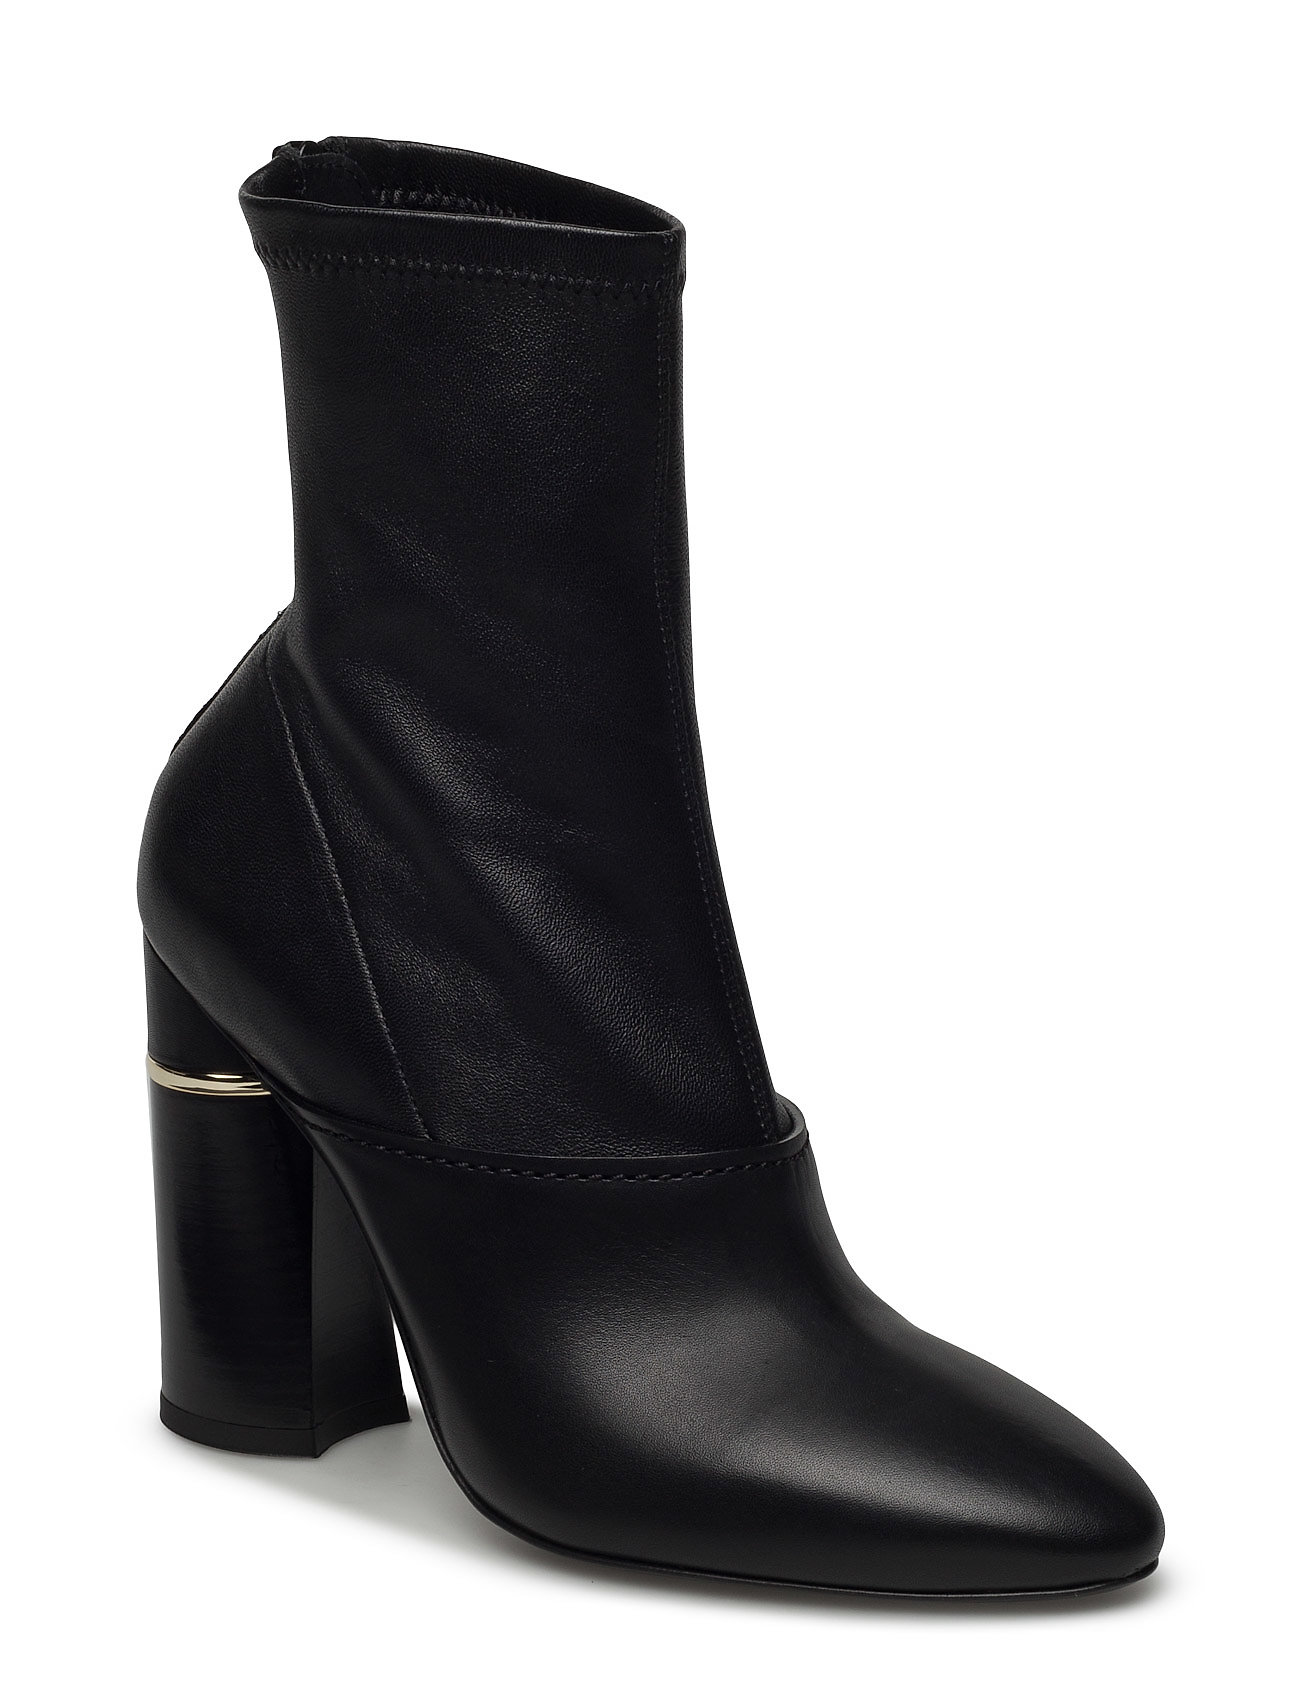 3.1 phillip lim – Kyoto - 105mm stretch boot with heel insert fra boozt.com dk